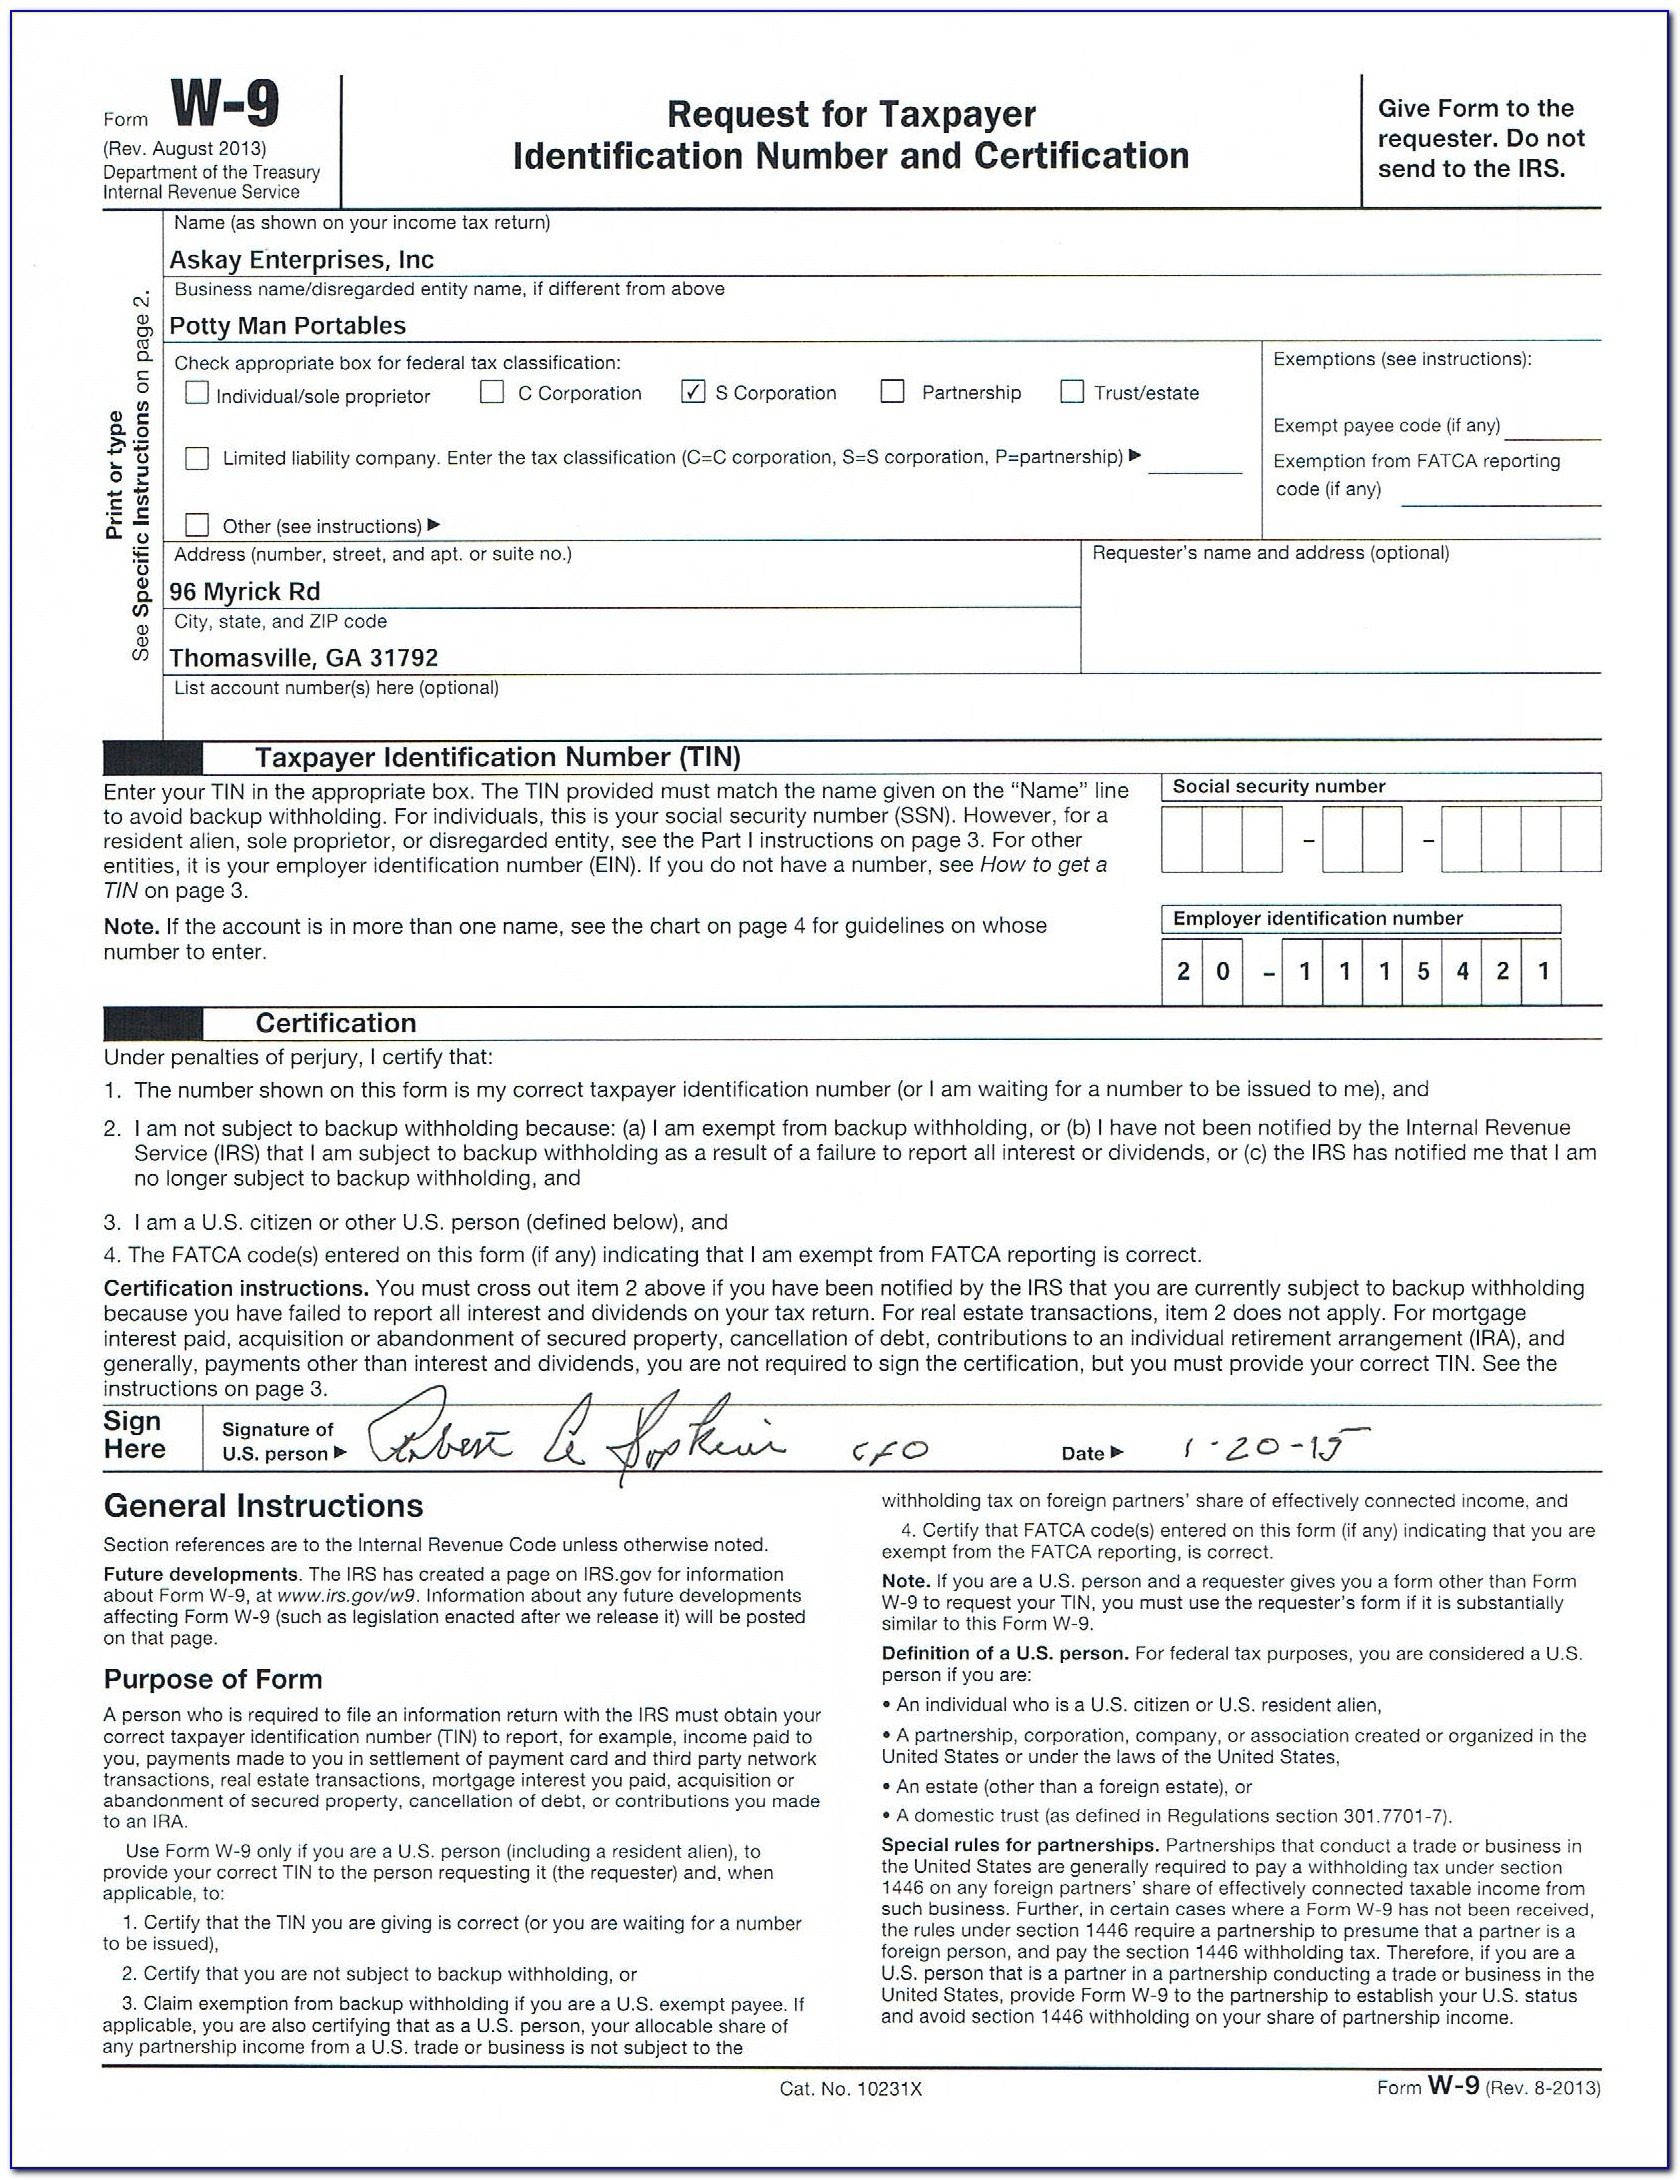 W9 Free Printable Form 2016 - Form : Resume Examples #x6Ped3Vlad - W9 Free Printable Form 2016